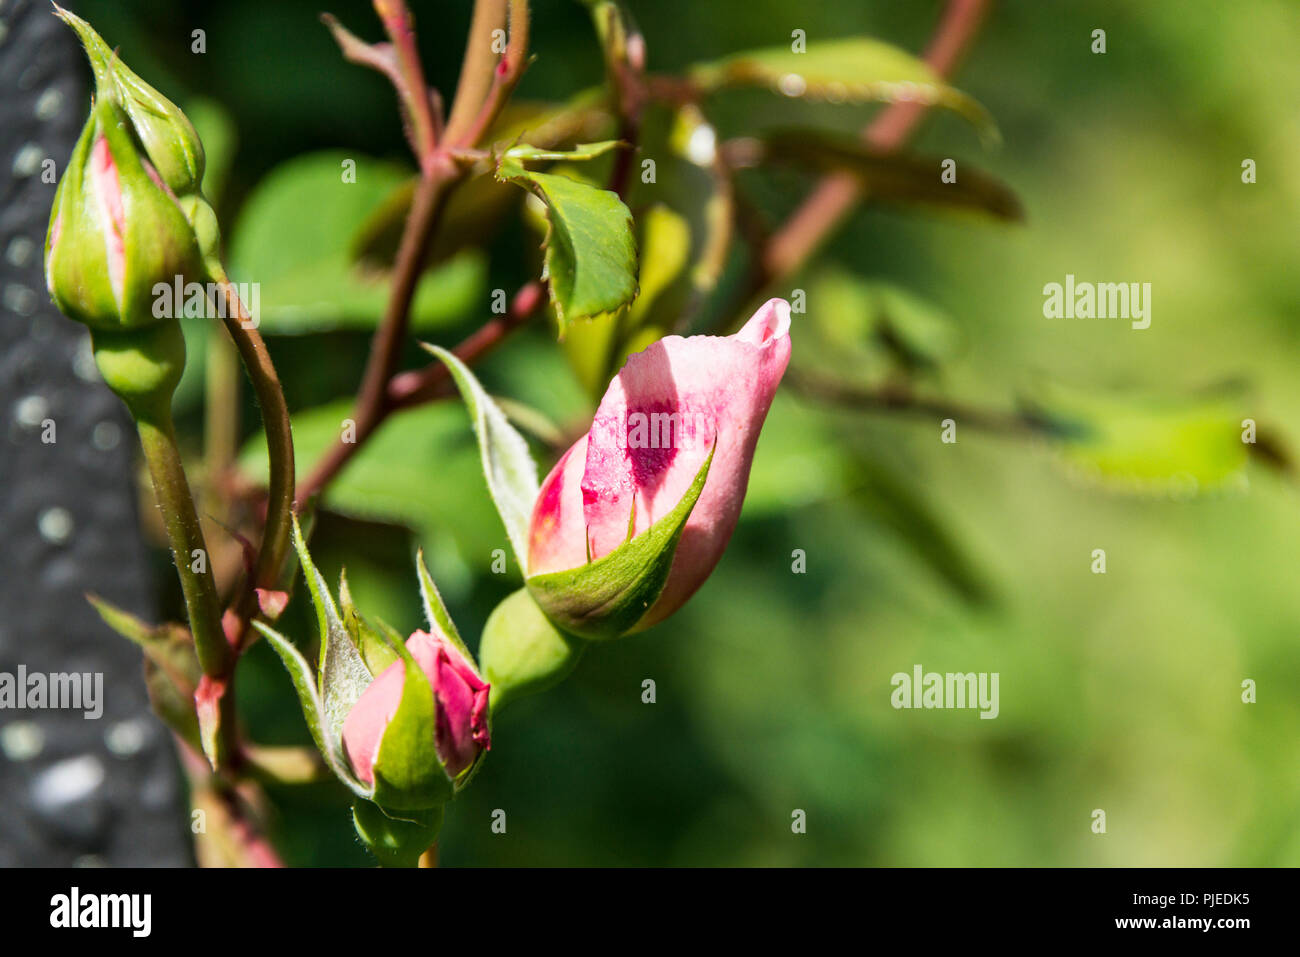 The buds of an English climbing rose 'The Generous Gardener' - Stock Image